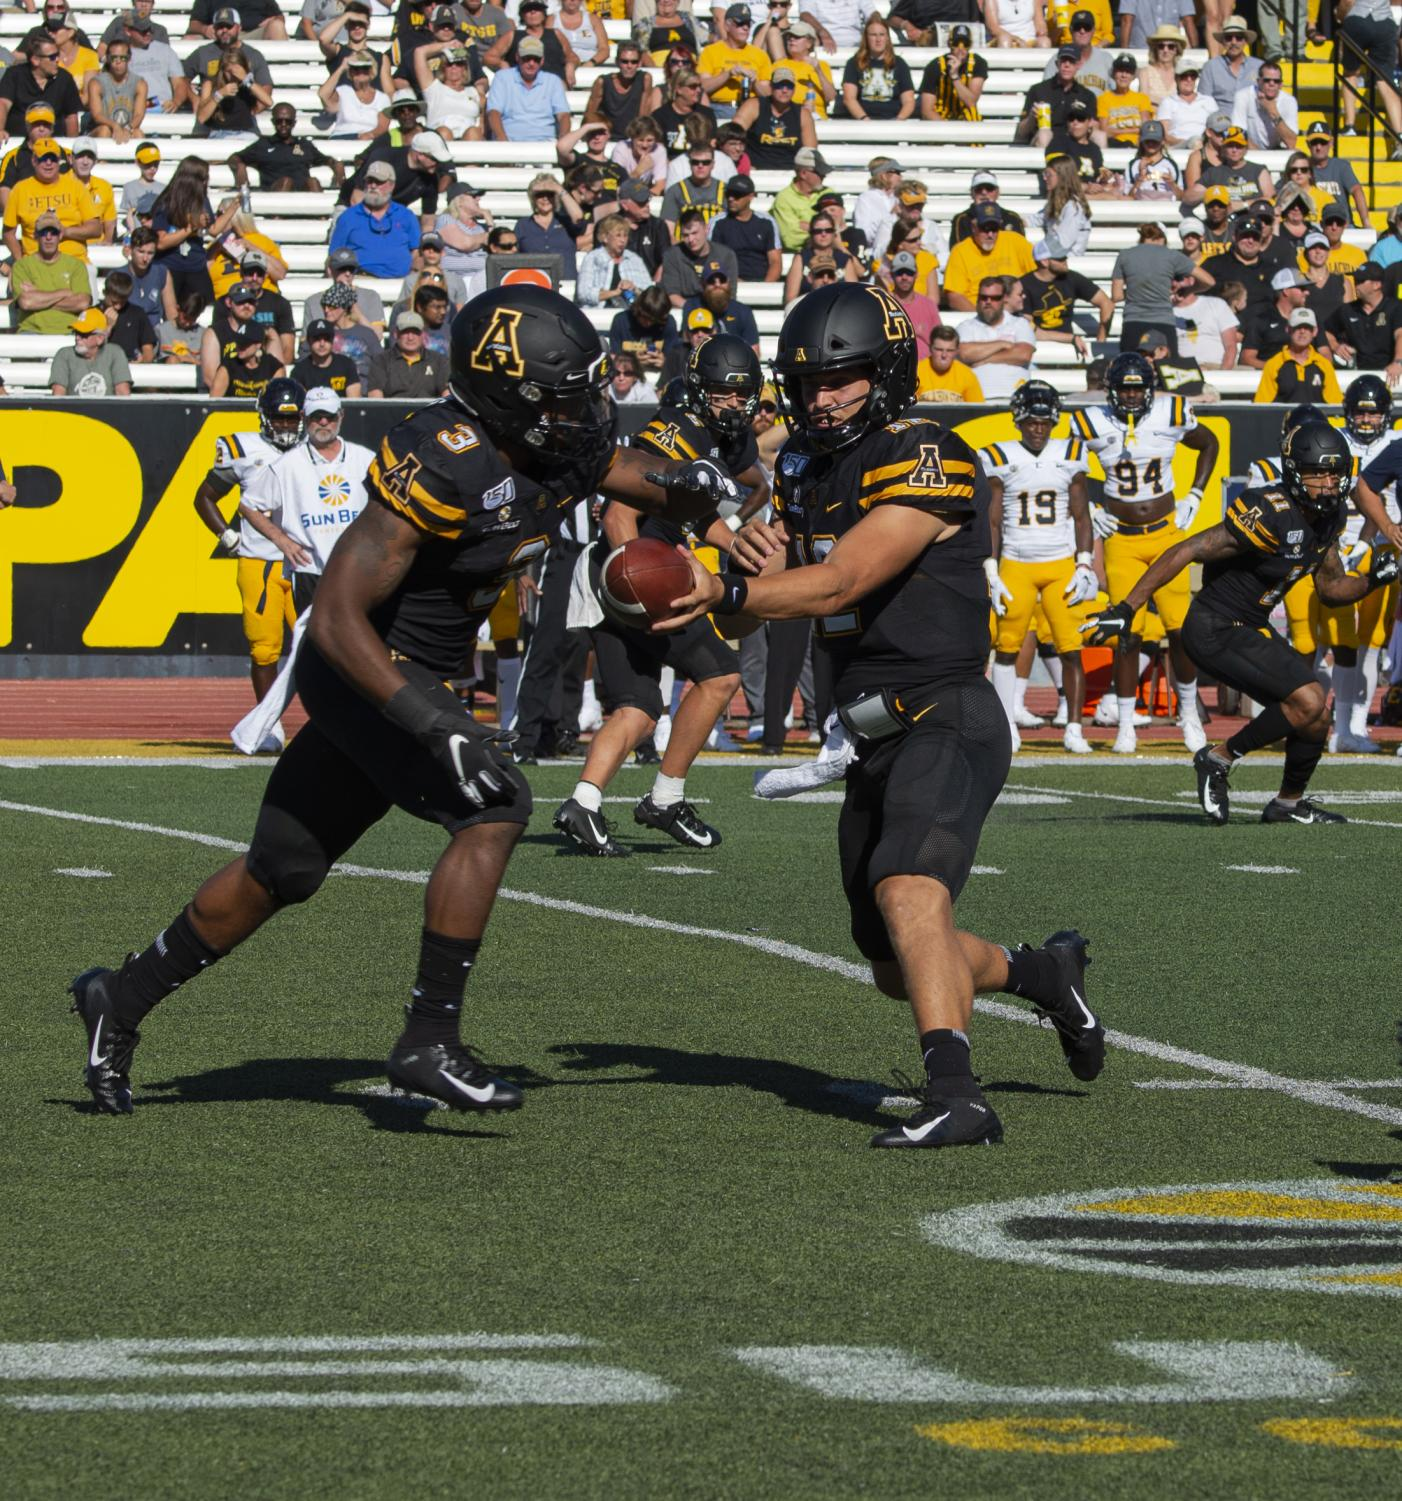 Junior running back Darrynton Evans prepares to take a handoff from junior quarterback Zac Thomas in App State's 42-7 win over East Tennessee State on Aug. 31.